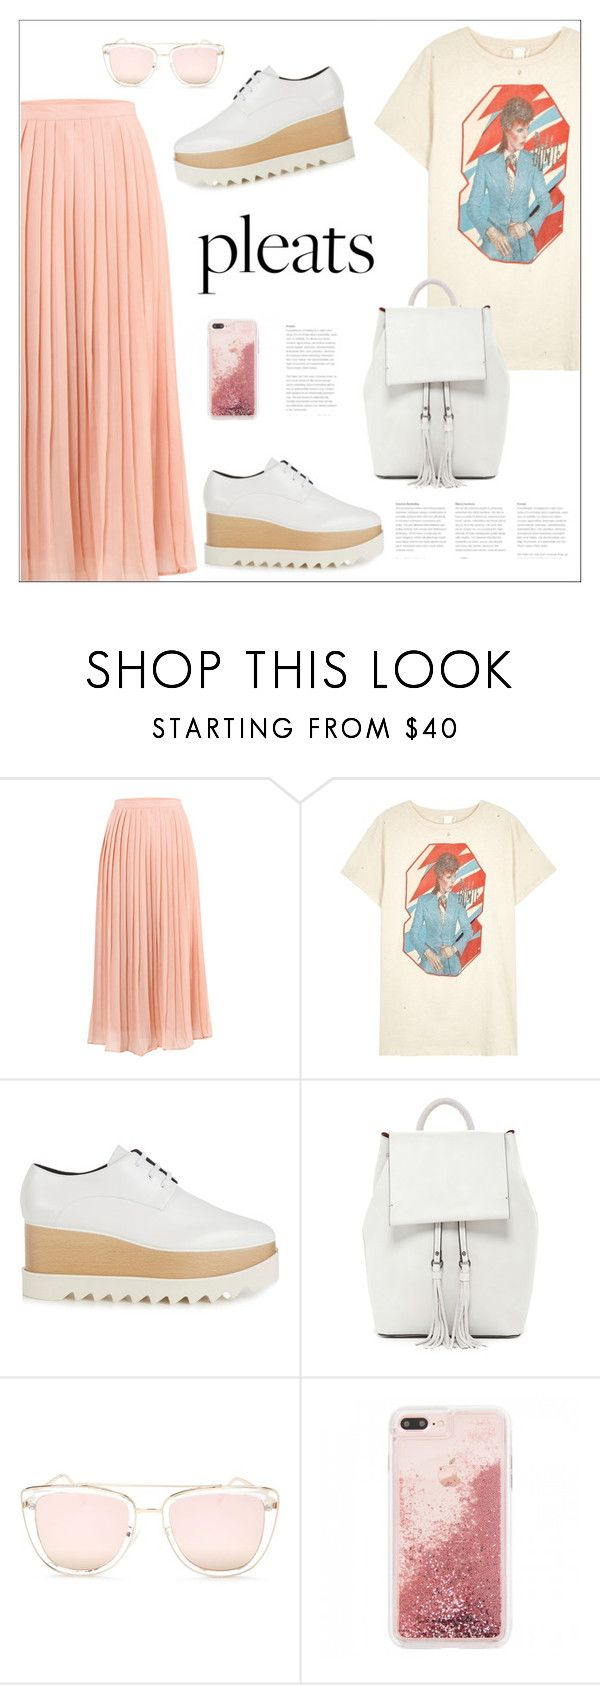 """Give Me Pleats, Please!"" by bliznec ❤ liked on Polyvore featuring MadeWorn, STELLA McCARTNEY, French Connection, Quay, pleats, polyvoreeditorial and polyvorecontest"